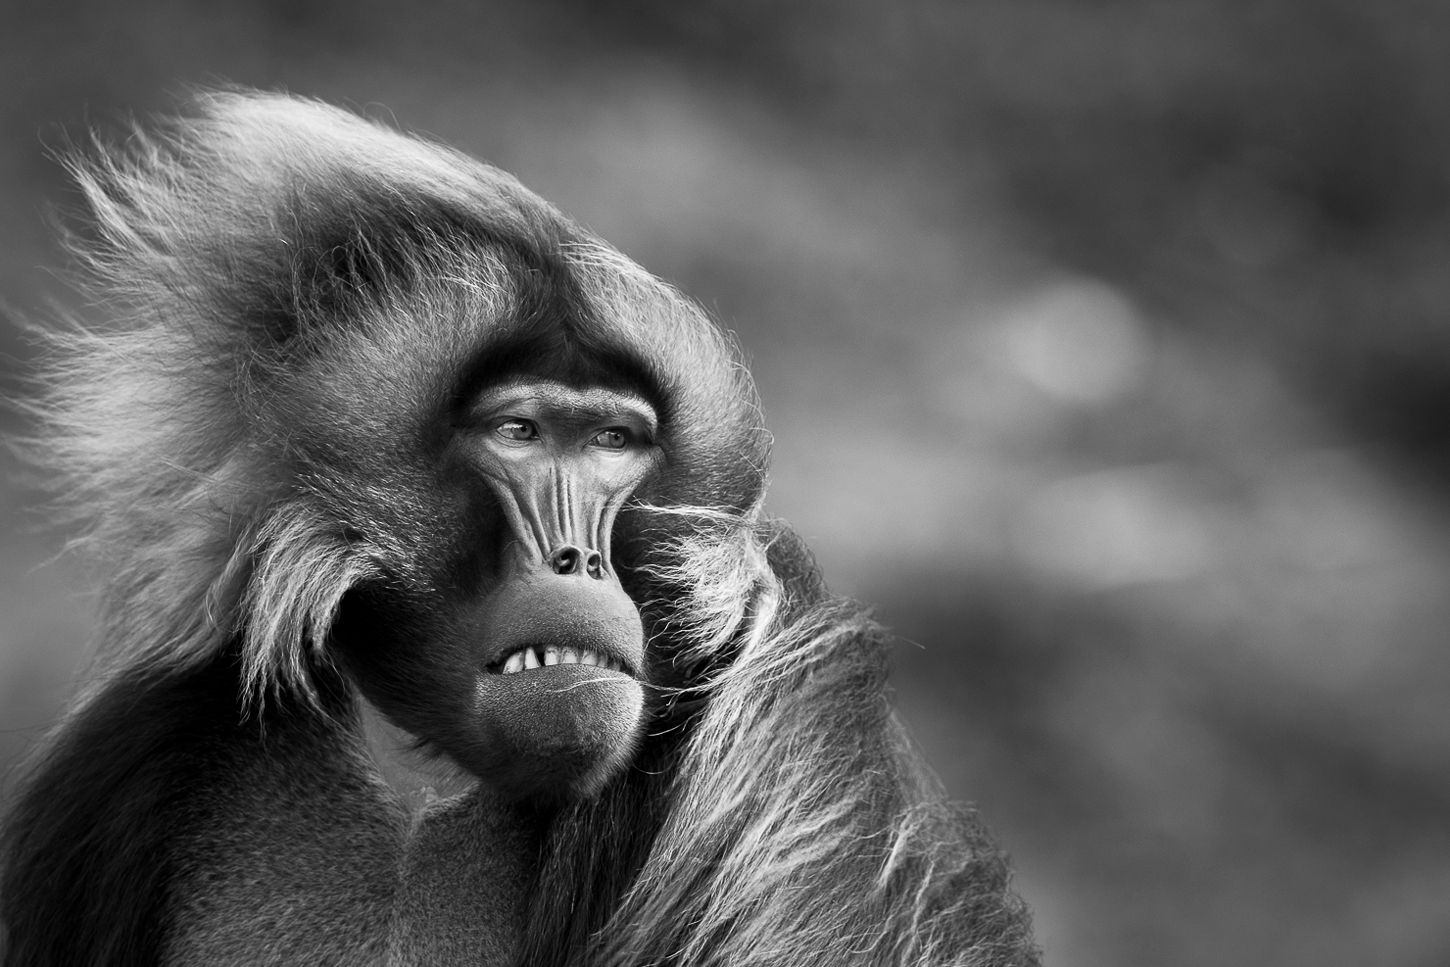 A Gelada monkey's hair being blasted by the wind in the Ethiopian Highlands ©Patrice Quillard